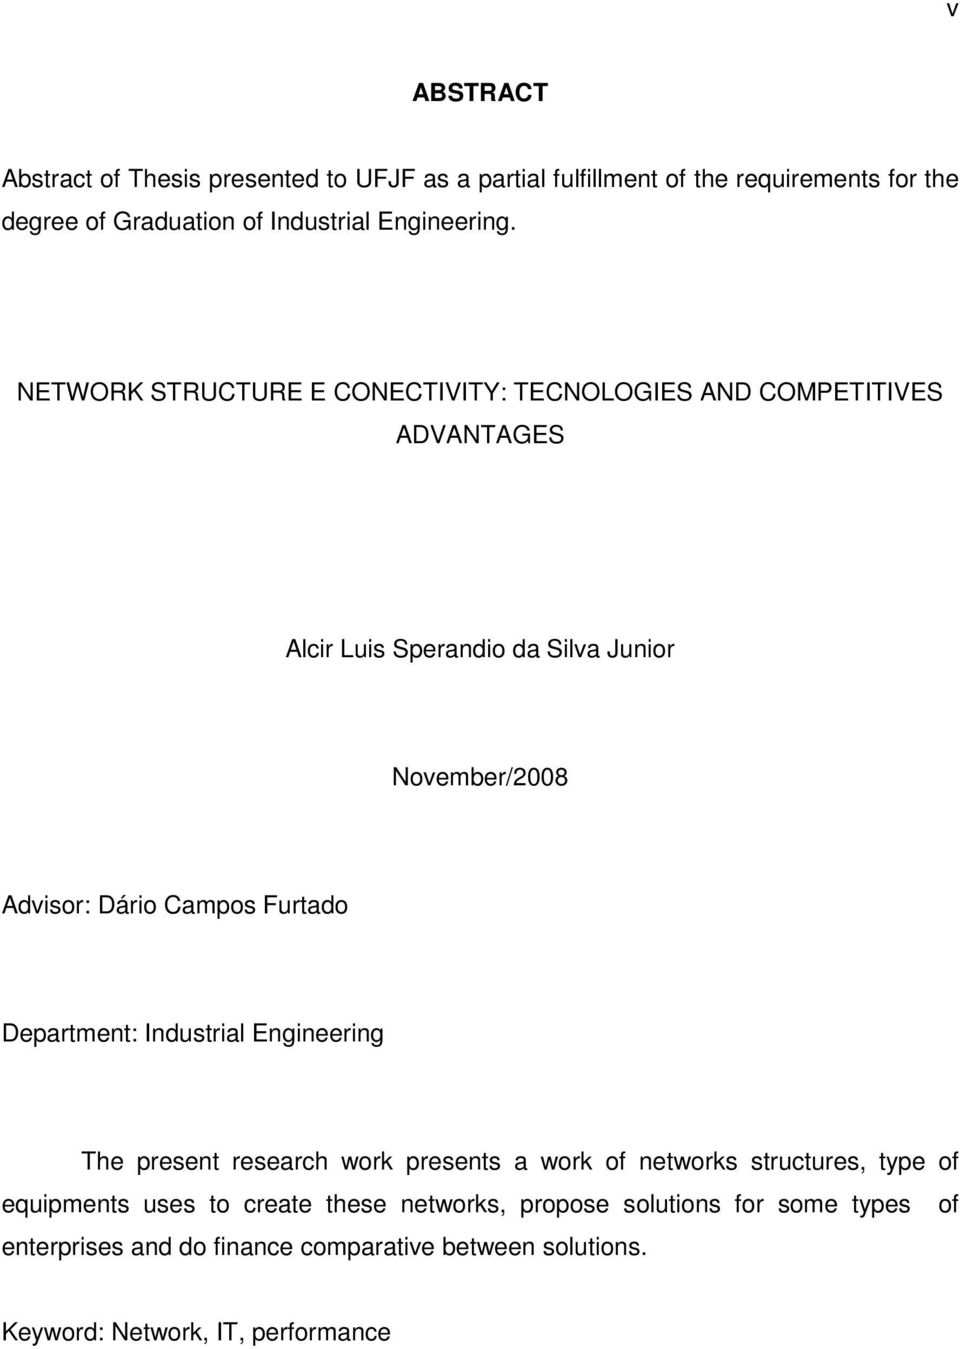 NETWORK STRUCTURE E CONECTIVITY: TECNOLOGIES AND COMPETITIVES ADVANTAGES Alcir Luis Sperandio da Silva Junior November/2008 Advisor: Dário Campos